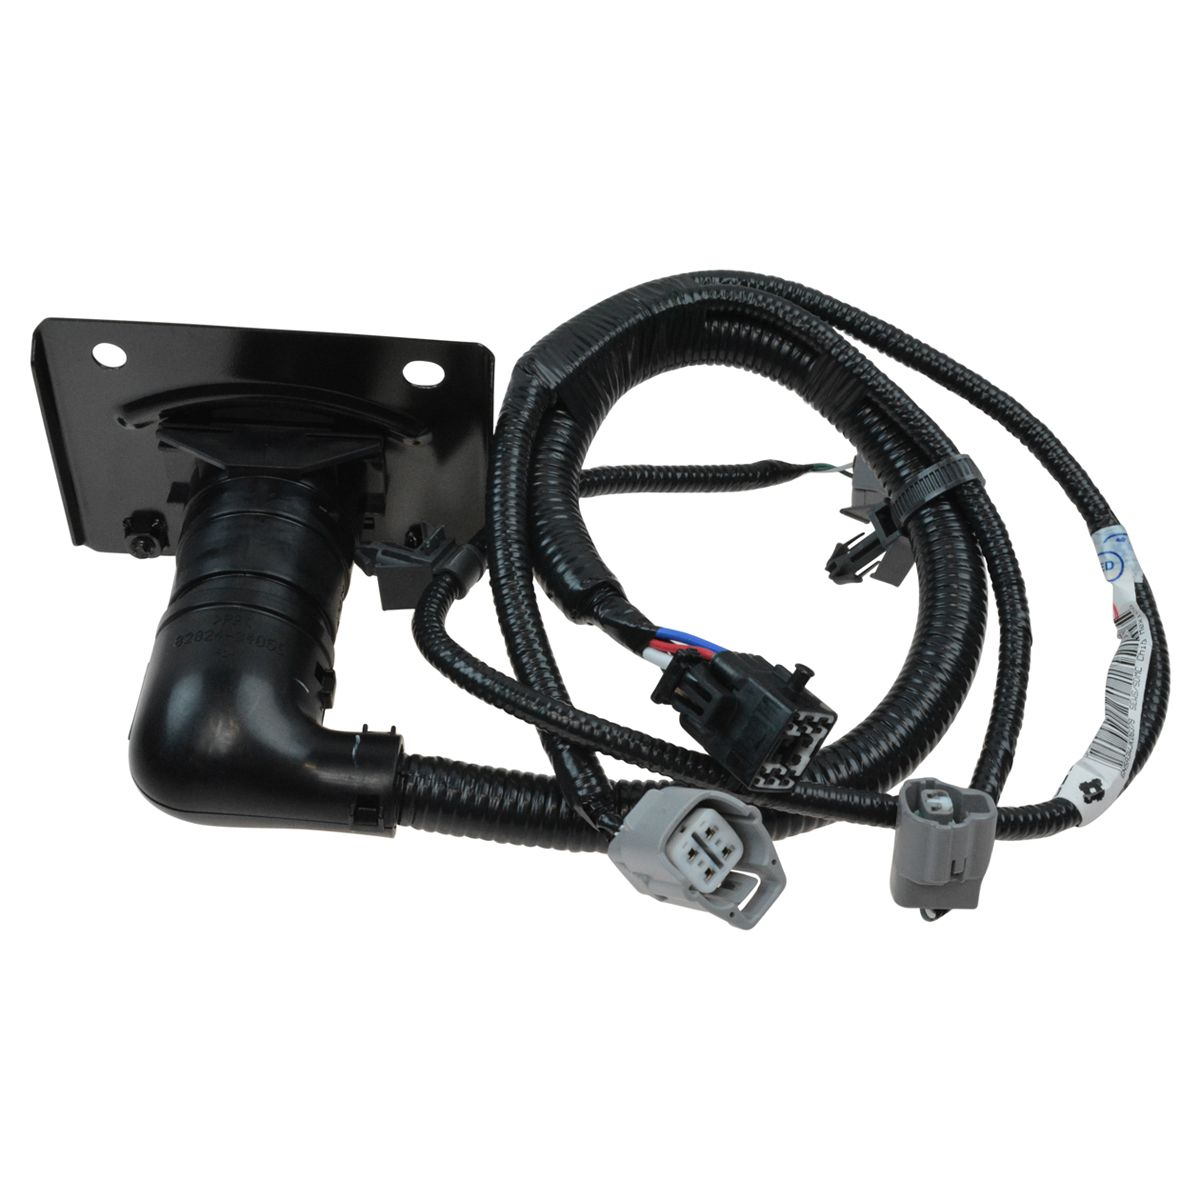 hight resolution of oem trailer tow hitch wiring harness 7 pin connector for toyota tacoma brand new